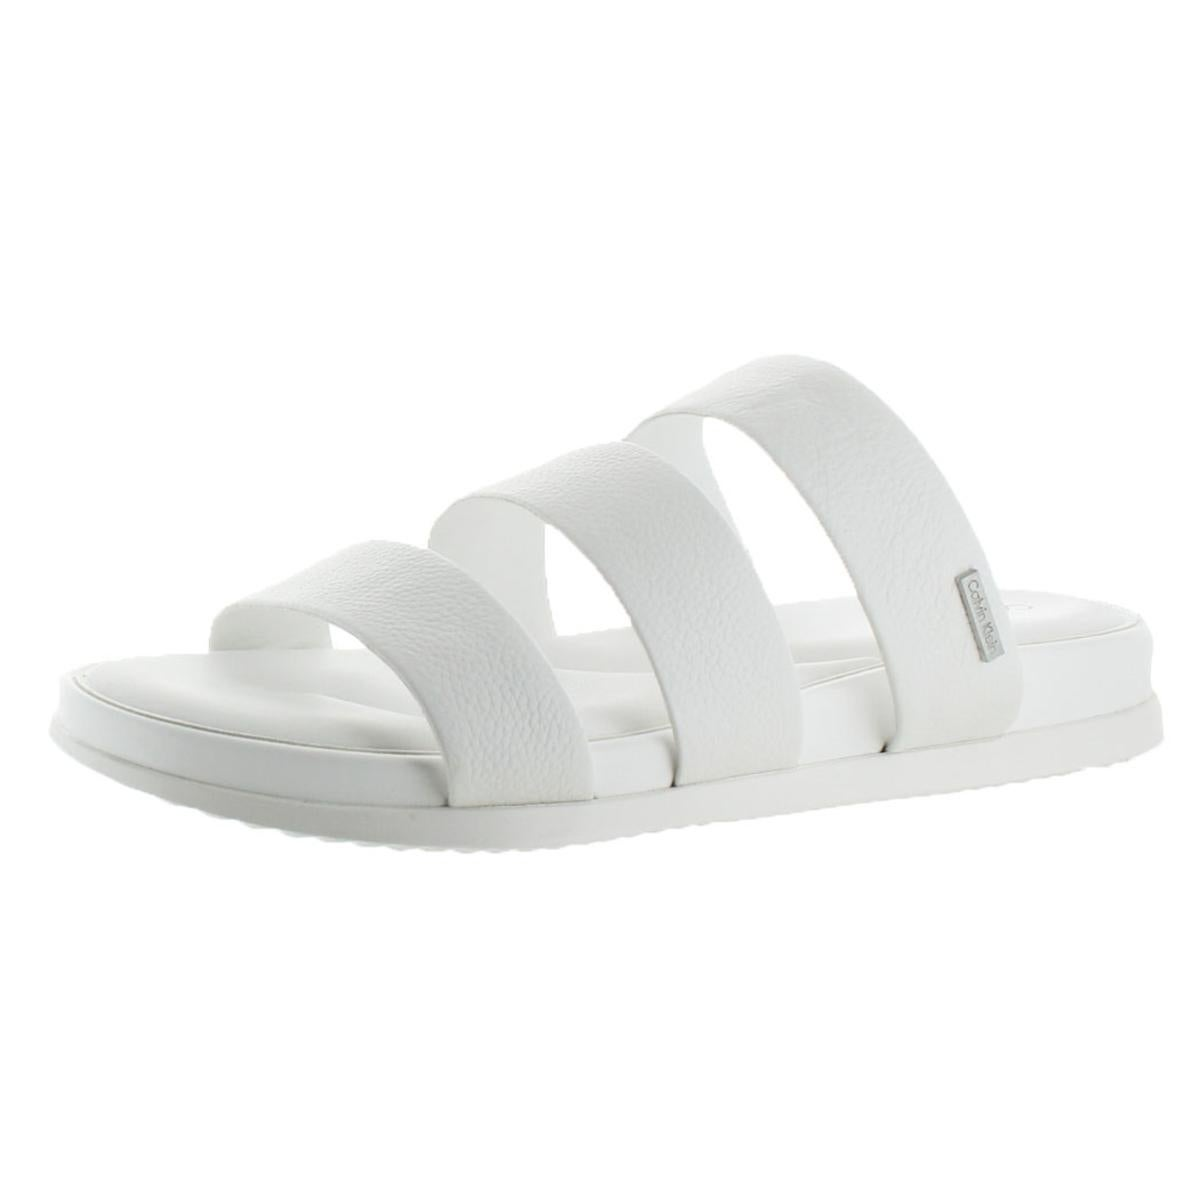 61f86fe85602 Shop Calvin Klein Womens Dalana Slide Sandals Open Toe Strappy - On Sale -  Free Shipping On Orders Over  45 - Overstock - 21182176